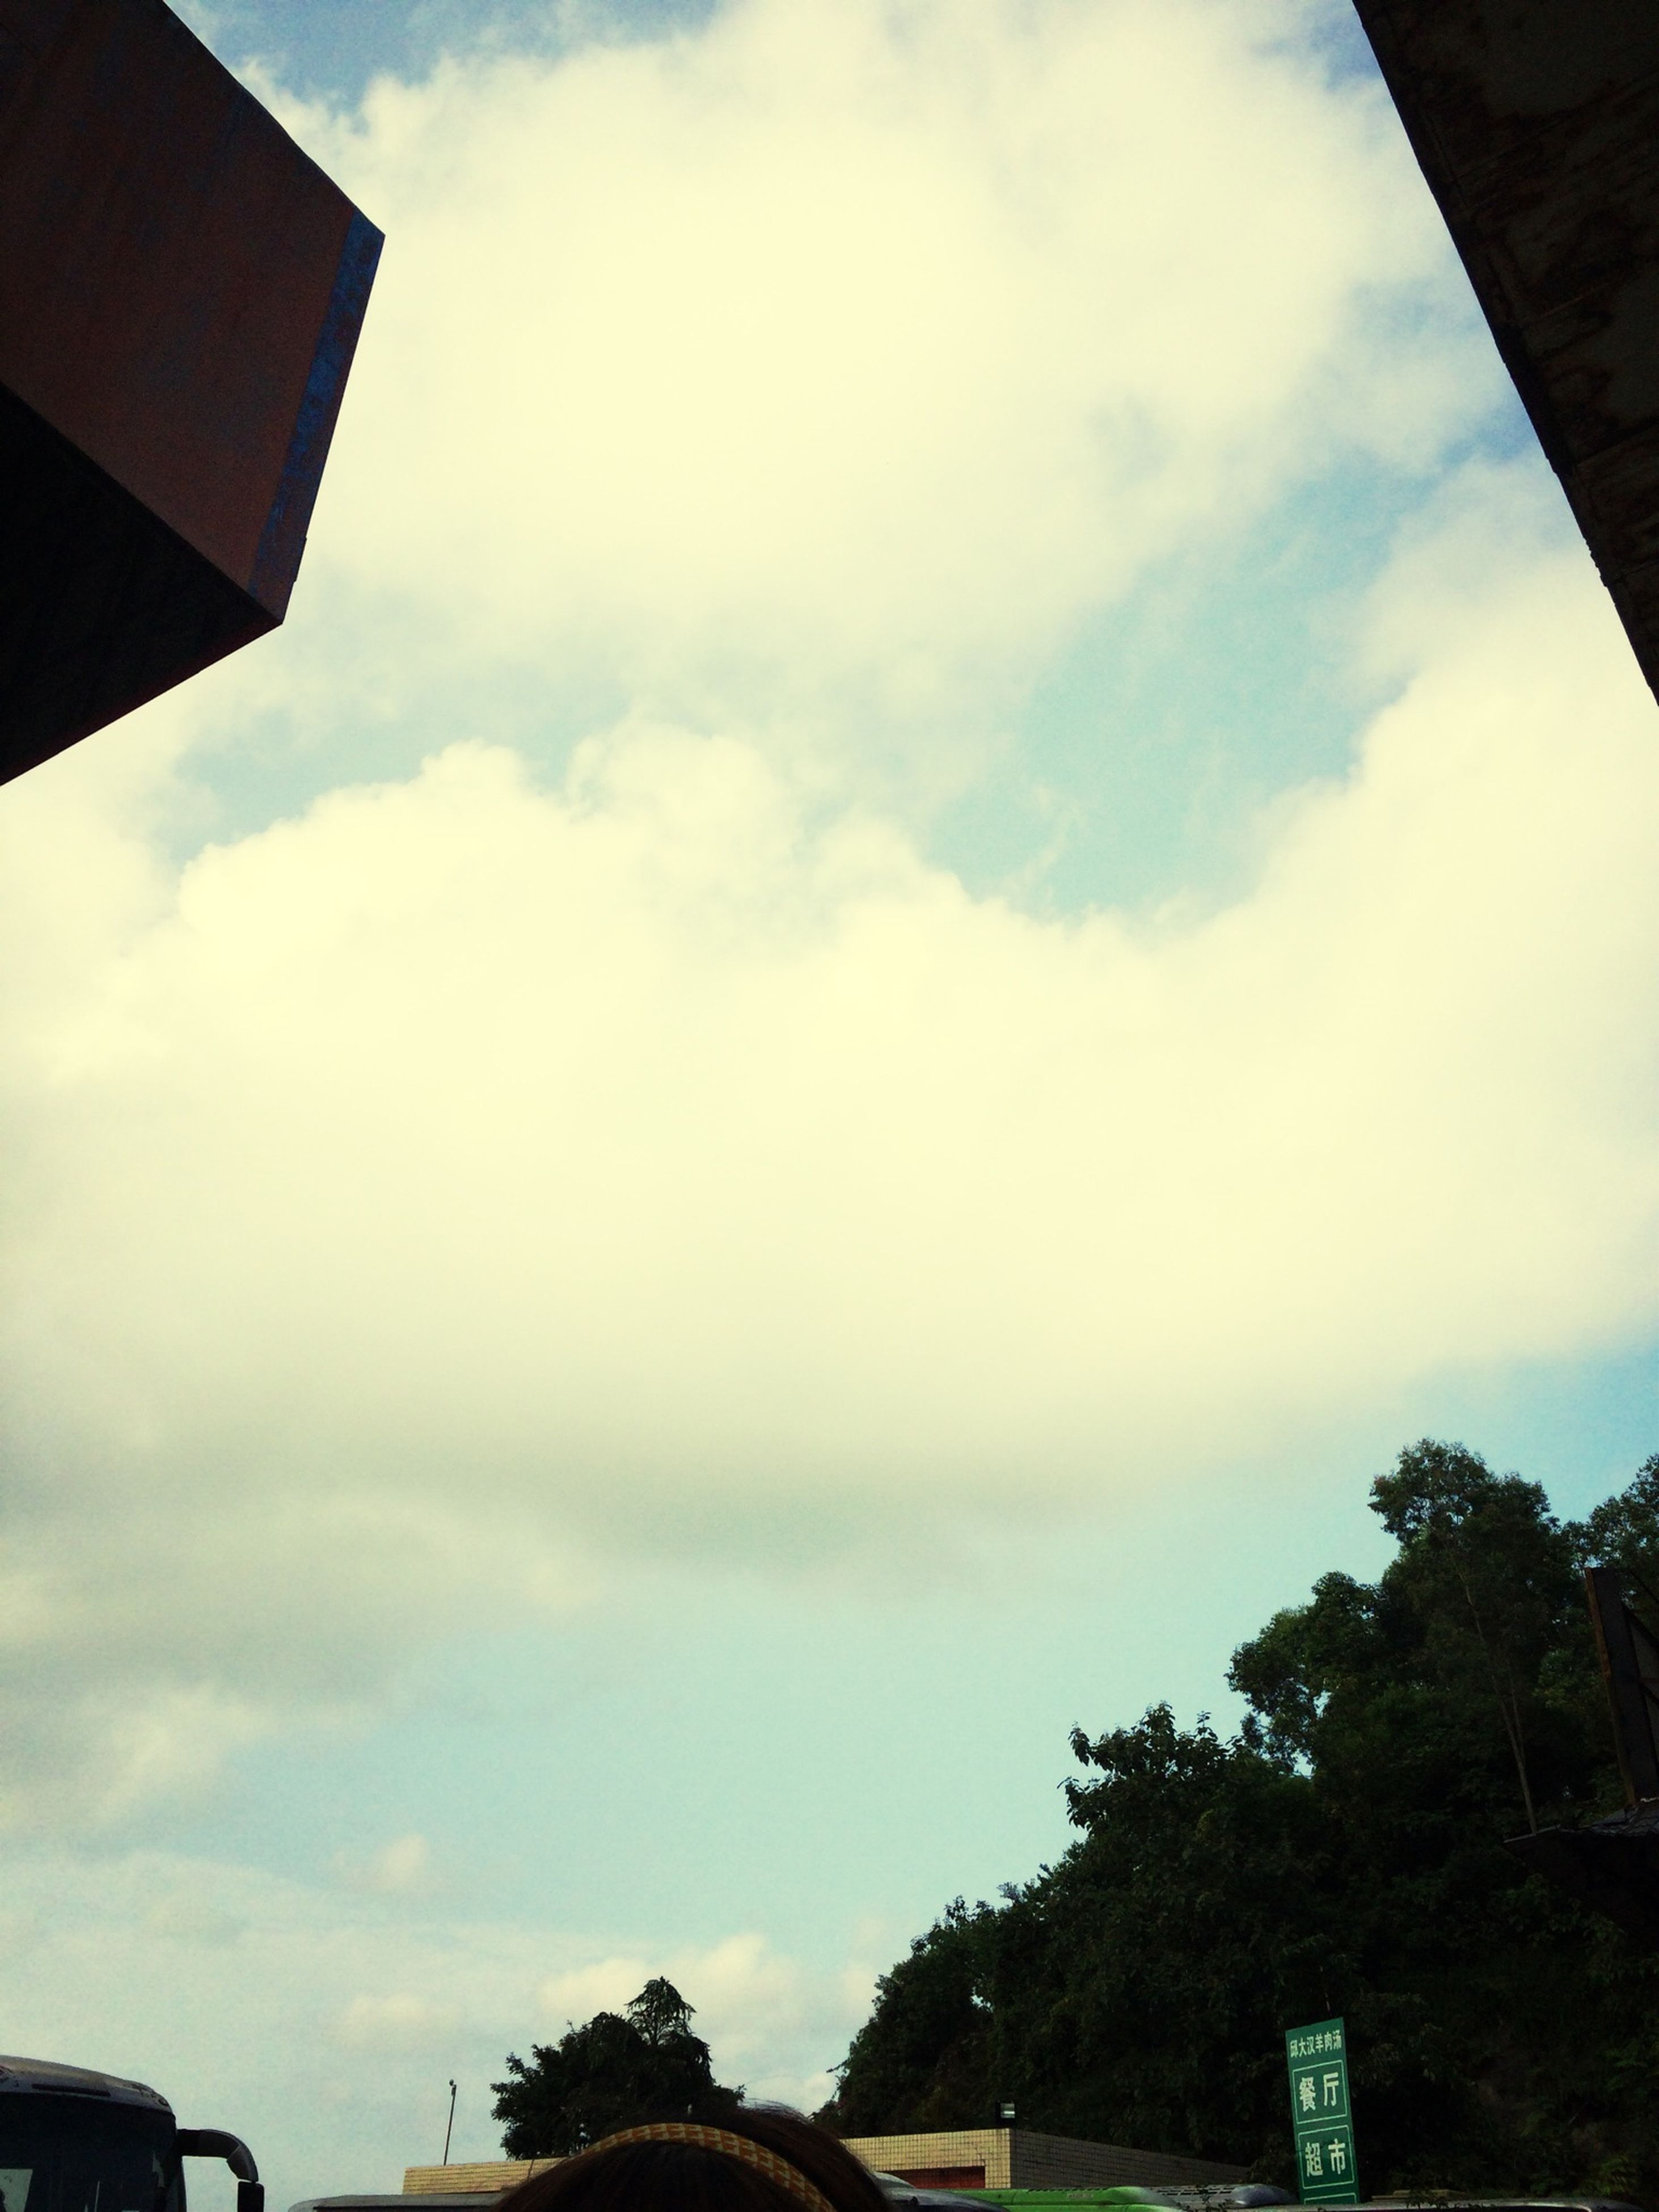 low angle view, sky, building exterior, architecture, built structure, cloud - sky, tree, cloud, house, cloudy, roof, outdoors, day, no people, building, nature, residential structure, high section, residential building, sunlight